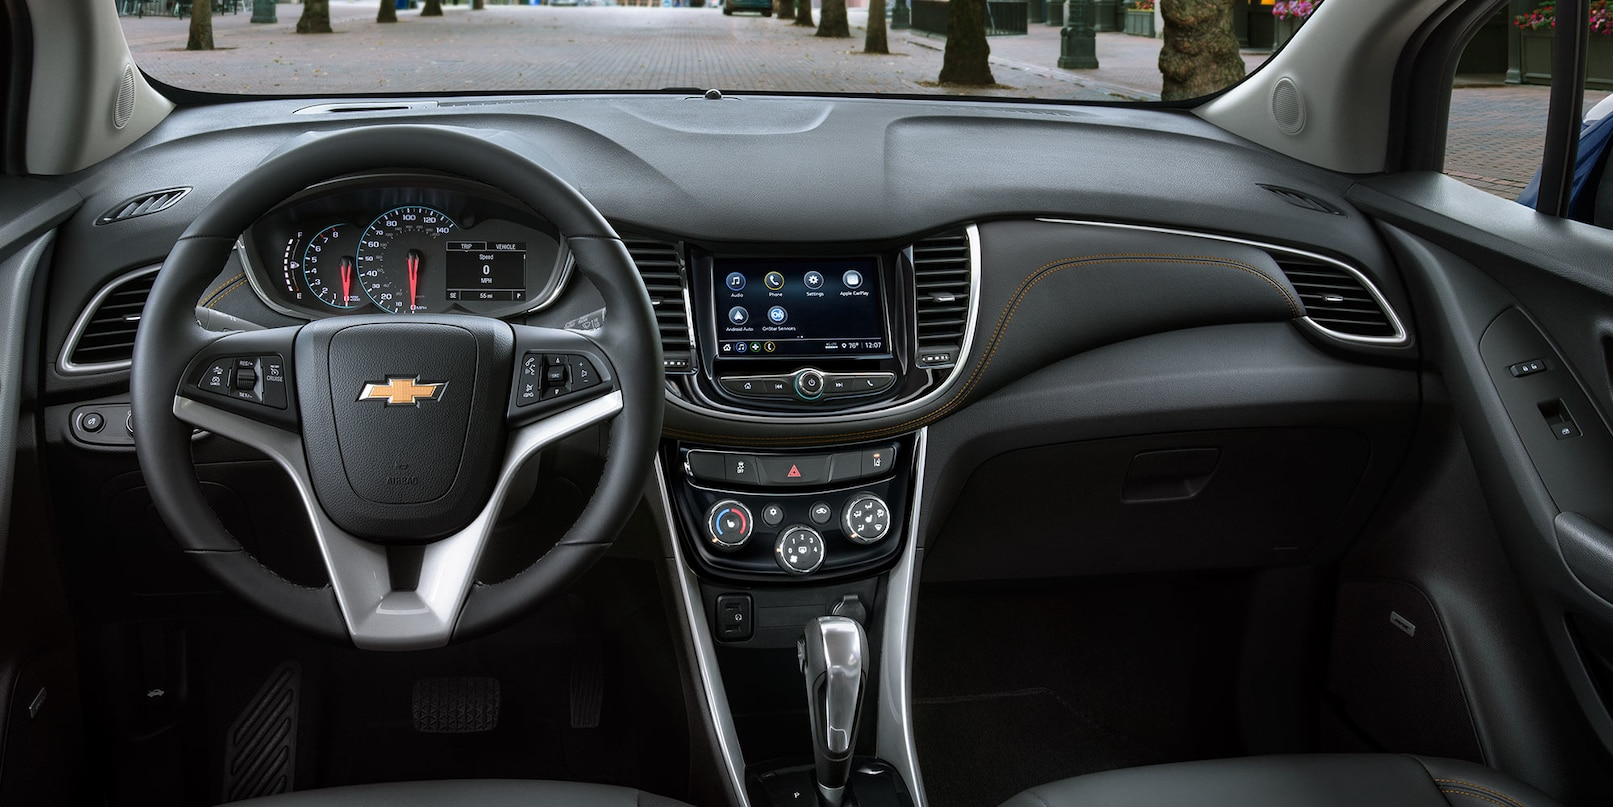 Interior of the 2019 Chevrolet Trax